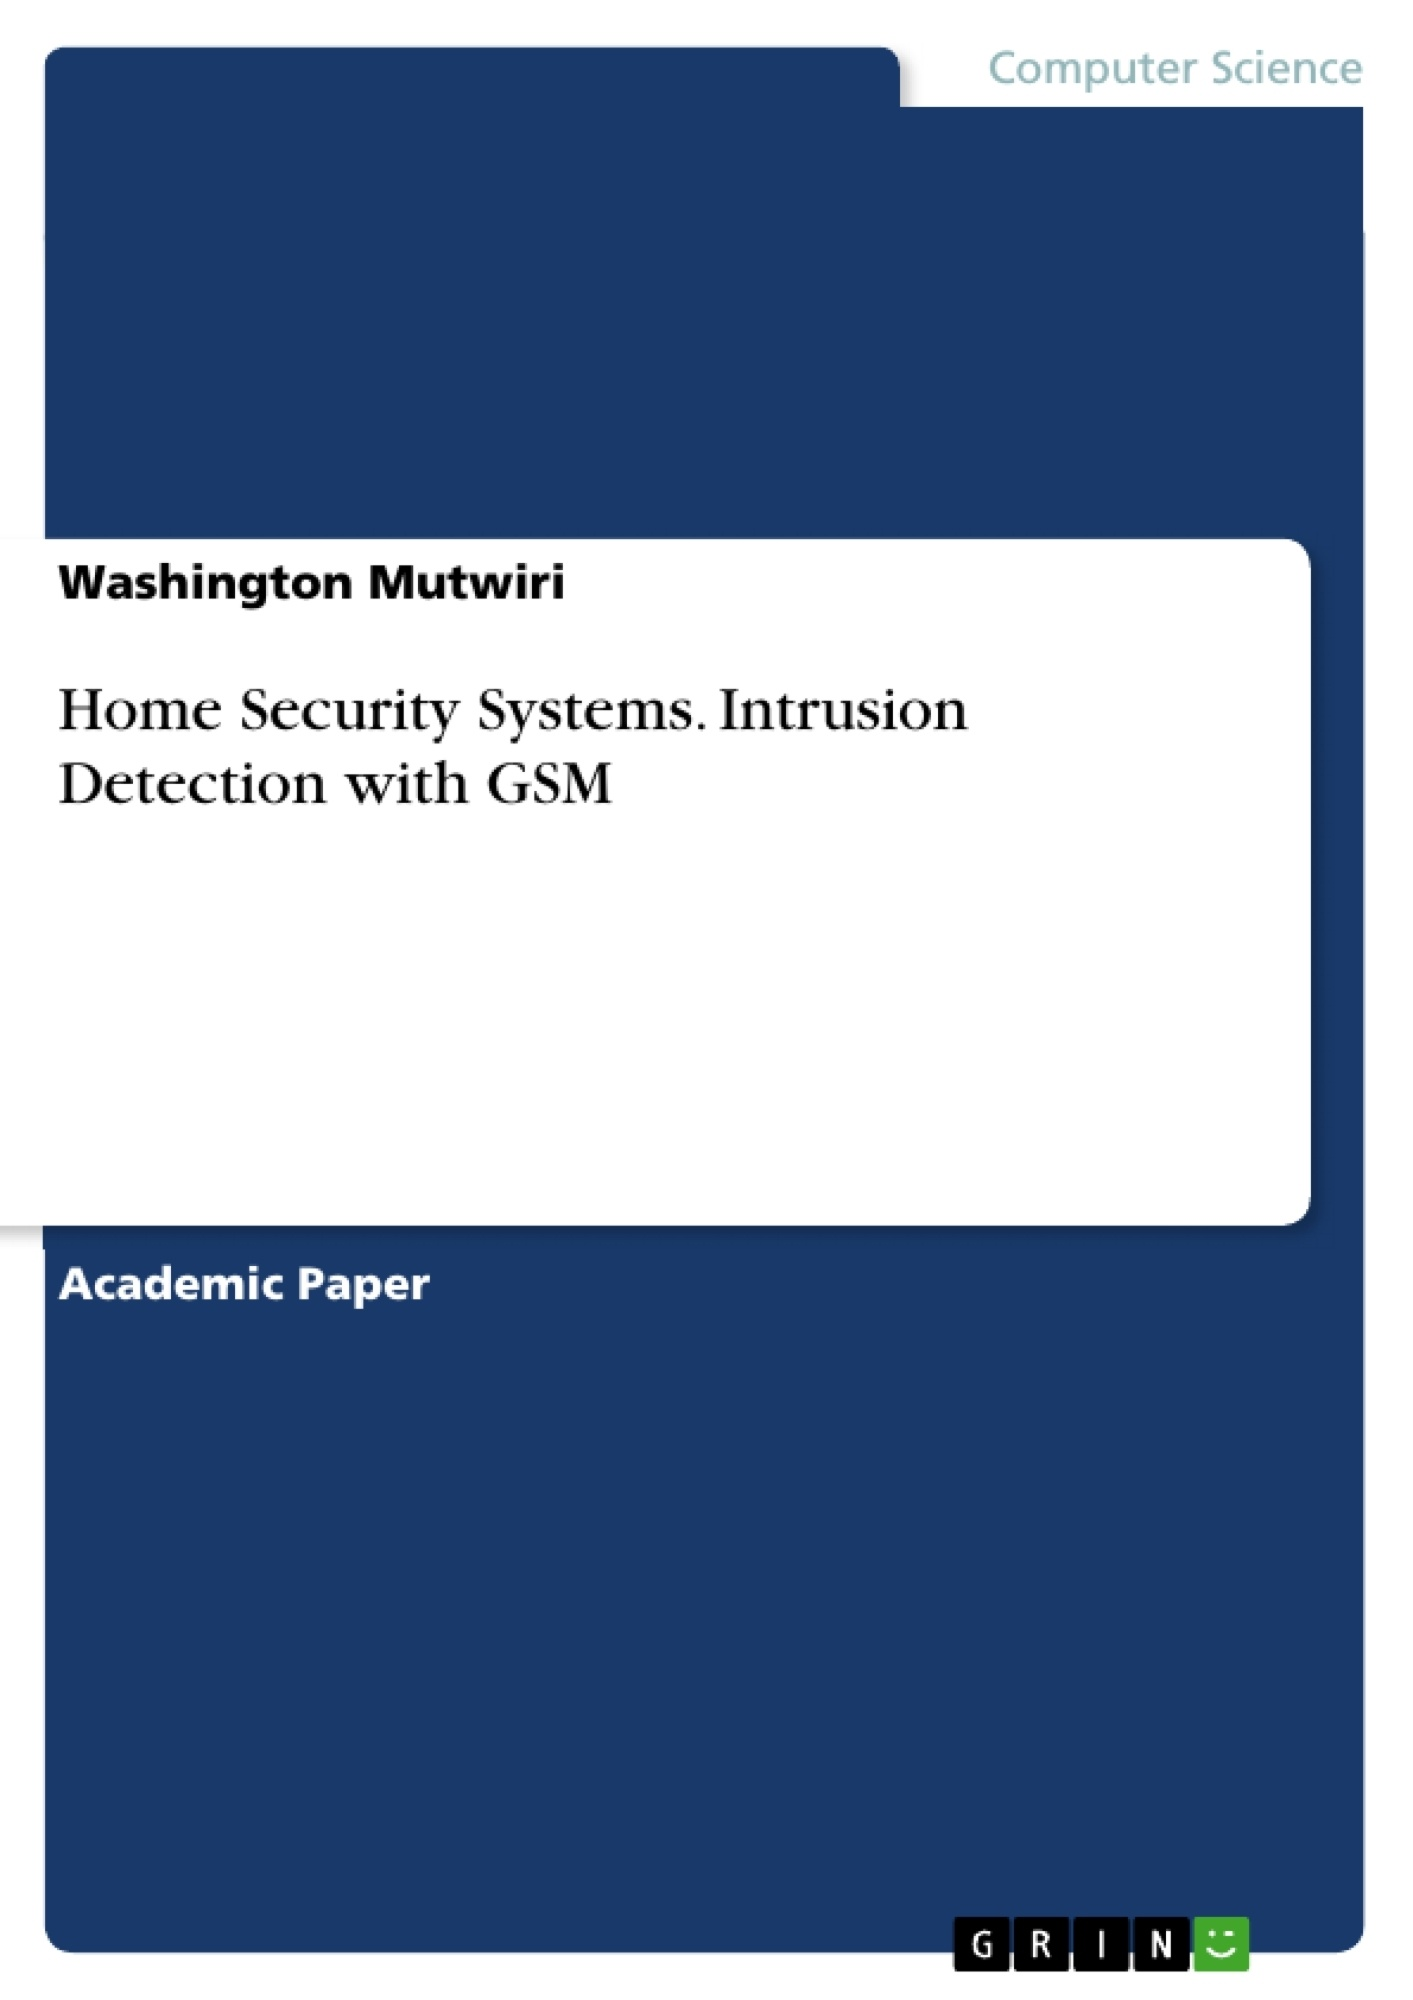 Title: Home Security Systems. Intrusion Detection with GSM